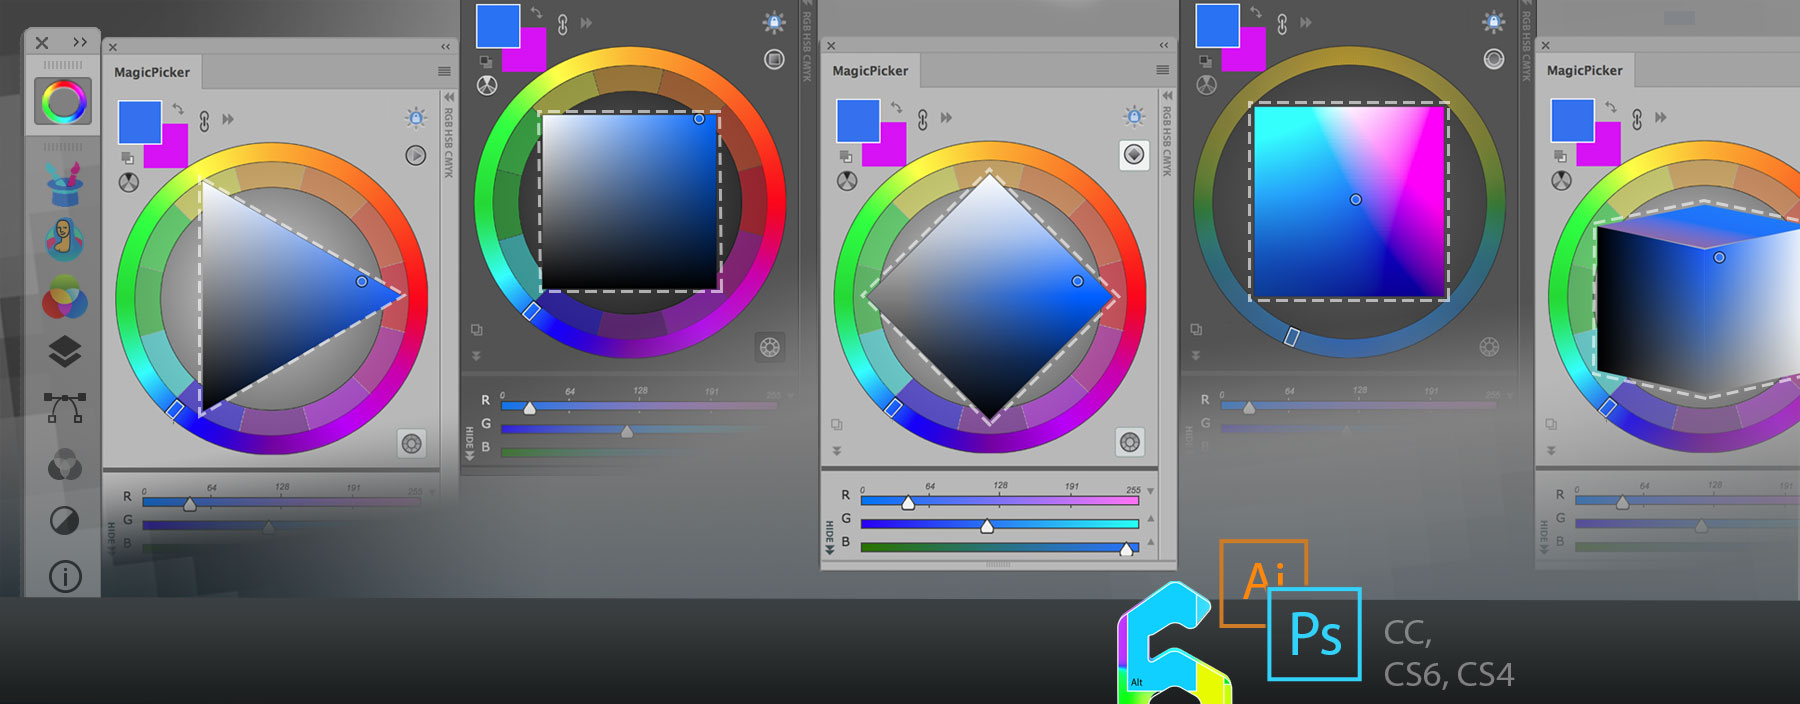 Color Wheel Modes in MagicPicker 6 for Adobe Photoshop & Illustrator